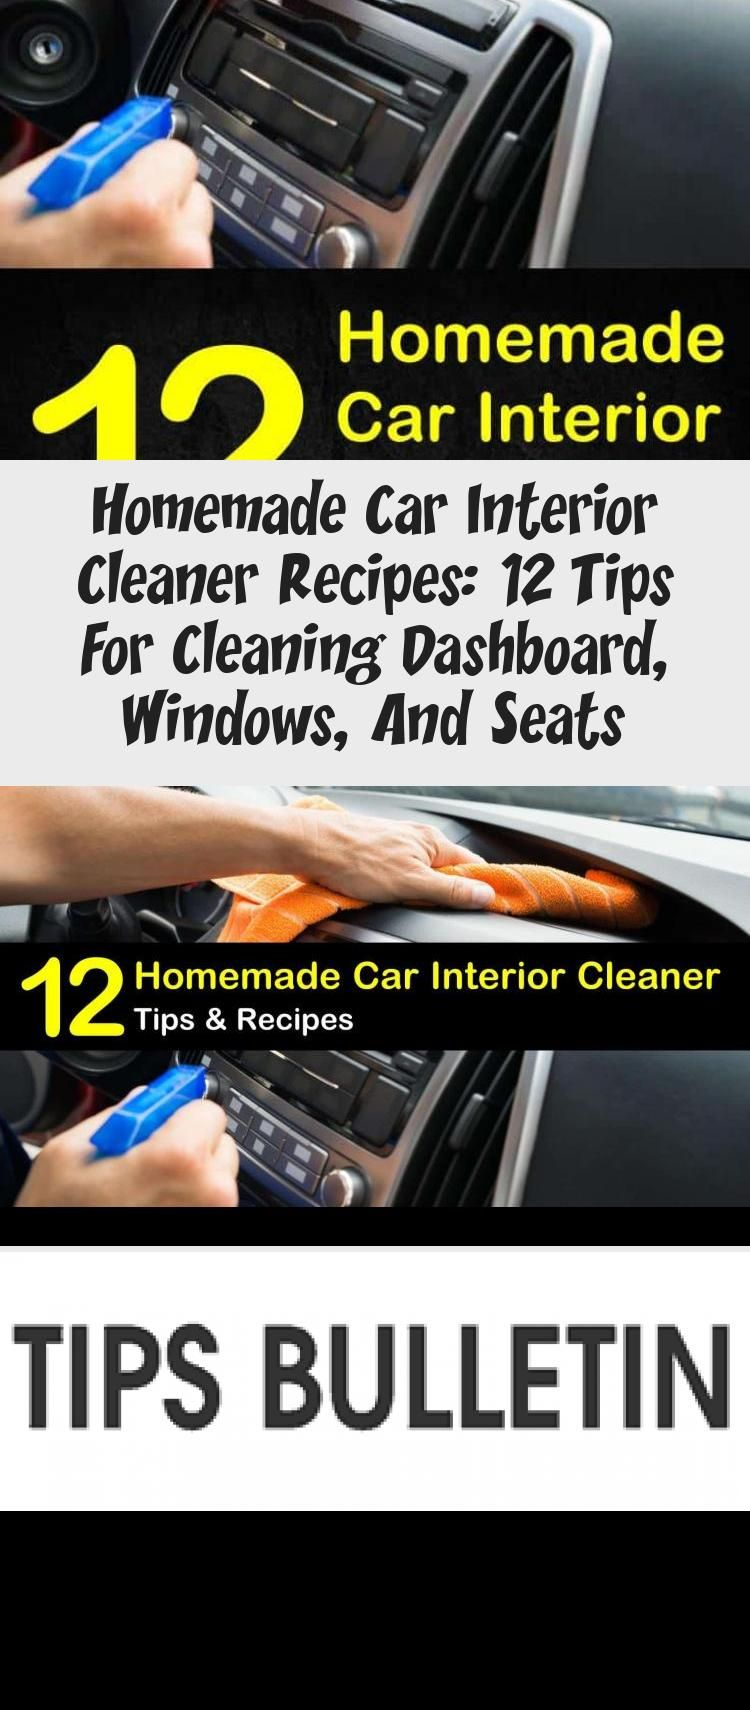 Homemade Car Interior Cleaner Recipes 12 Tips For